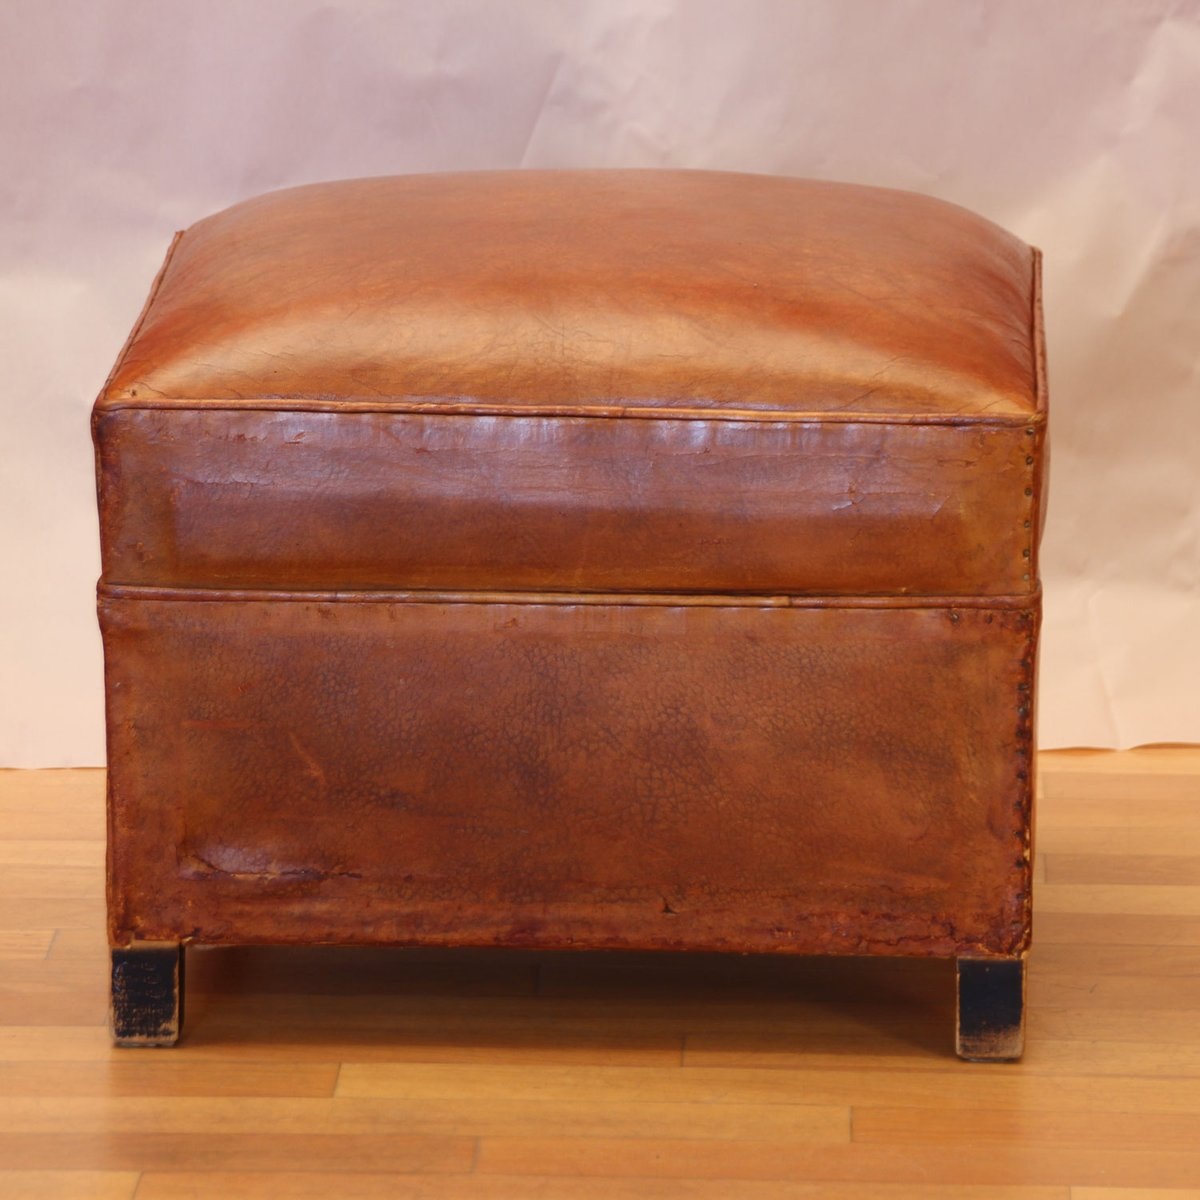 art deco french cognac leather pouf 1930s for sale at pamono. Black Bedroom Furniture Sets. Home Design Ideas